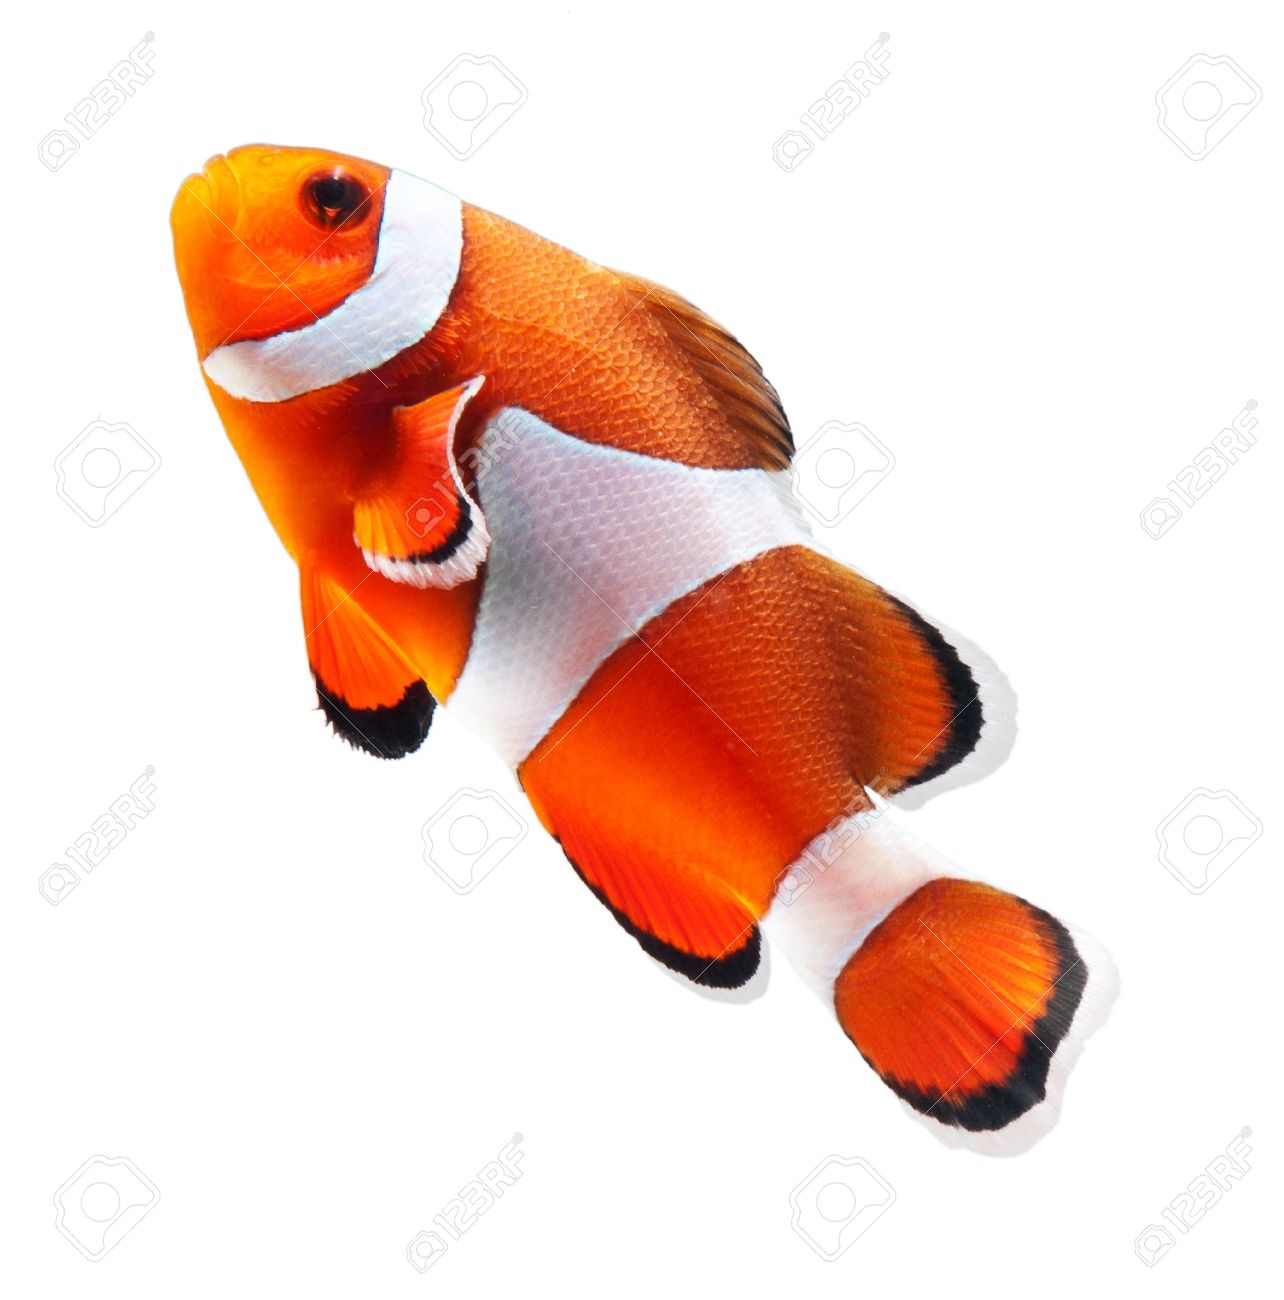 Clown Fish Or Anemone Fish Isolated On White Background Stock Photo ...